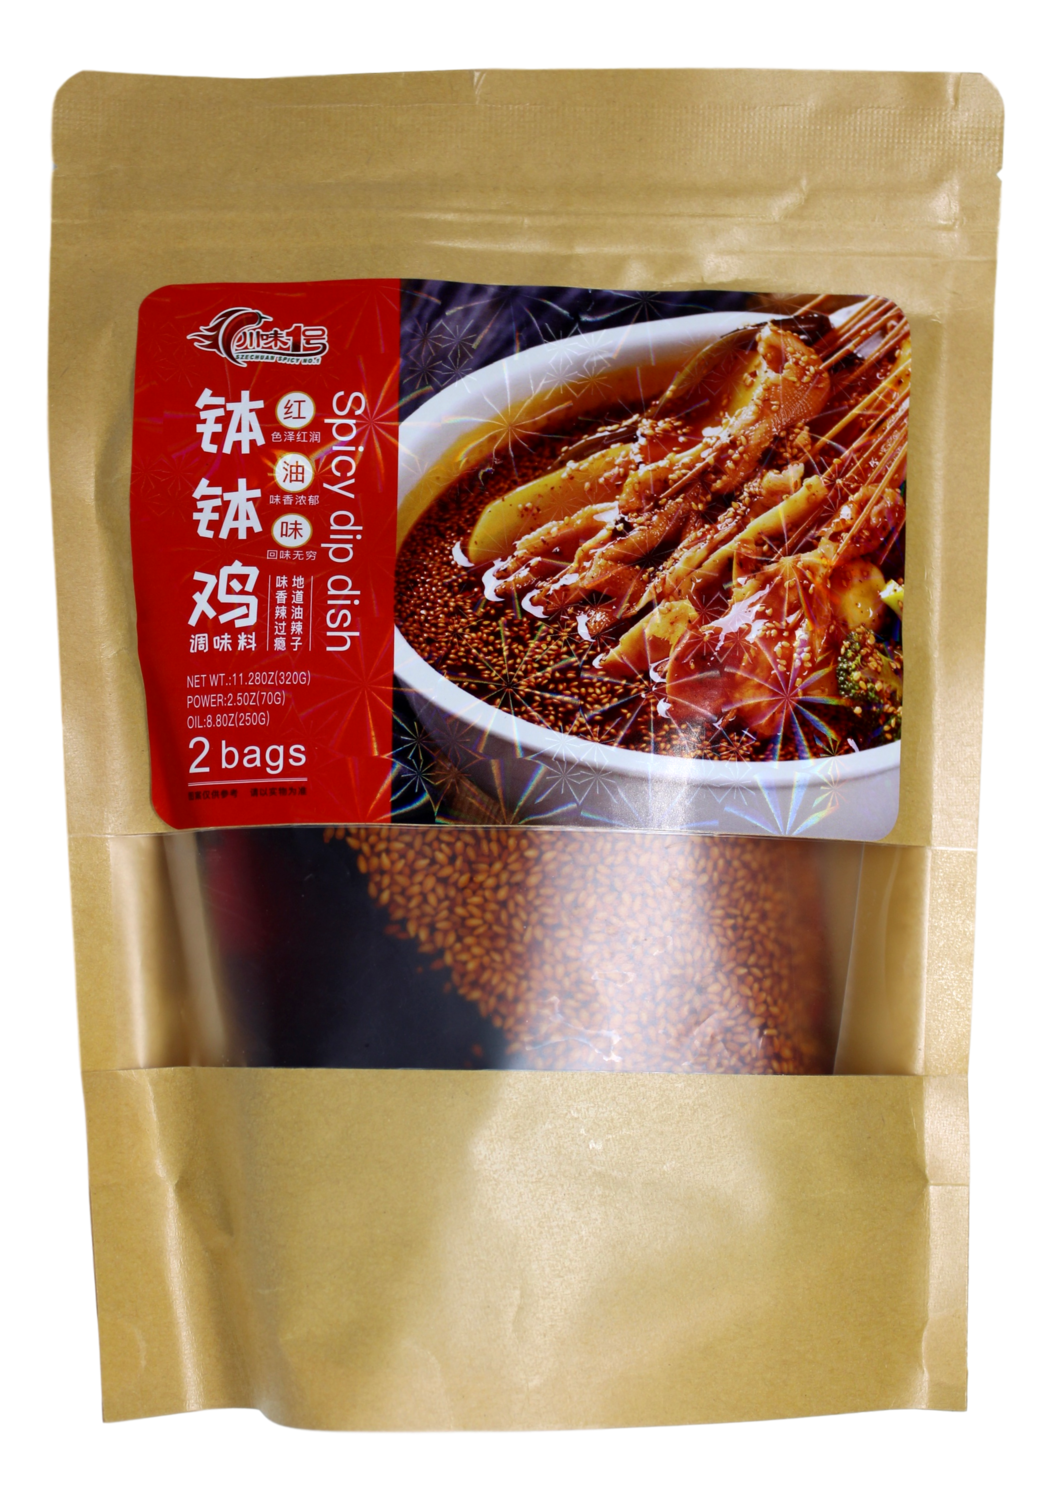 SZECHUAN SPICY NO. 1 SPICY DIP DISH 川味1号 钵钵鸡调味料(320G)